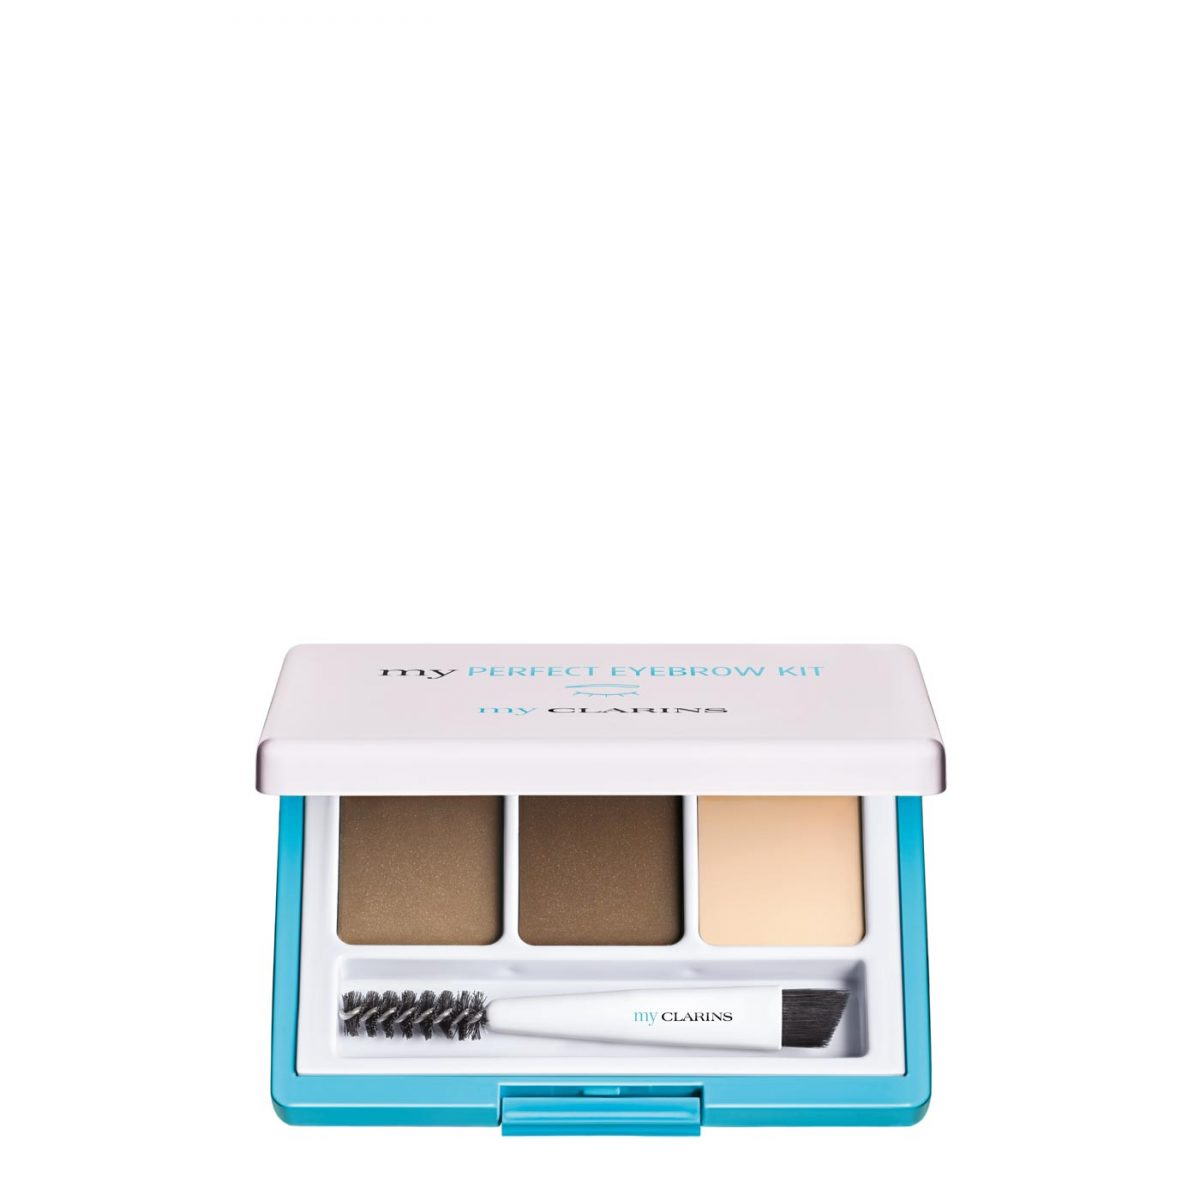 Clarins my PERFECT EYEBROW KIT Shade-01 light to medium